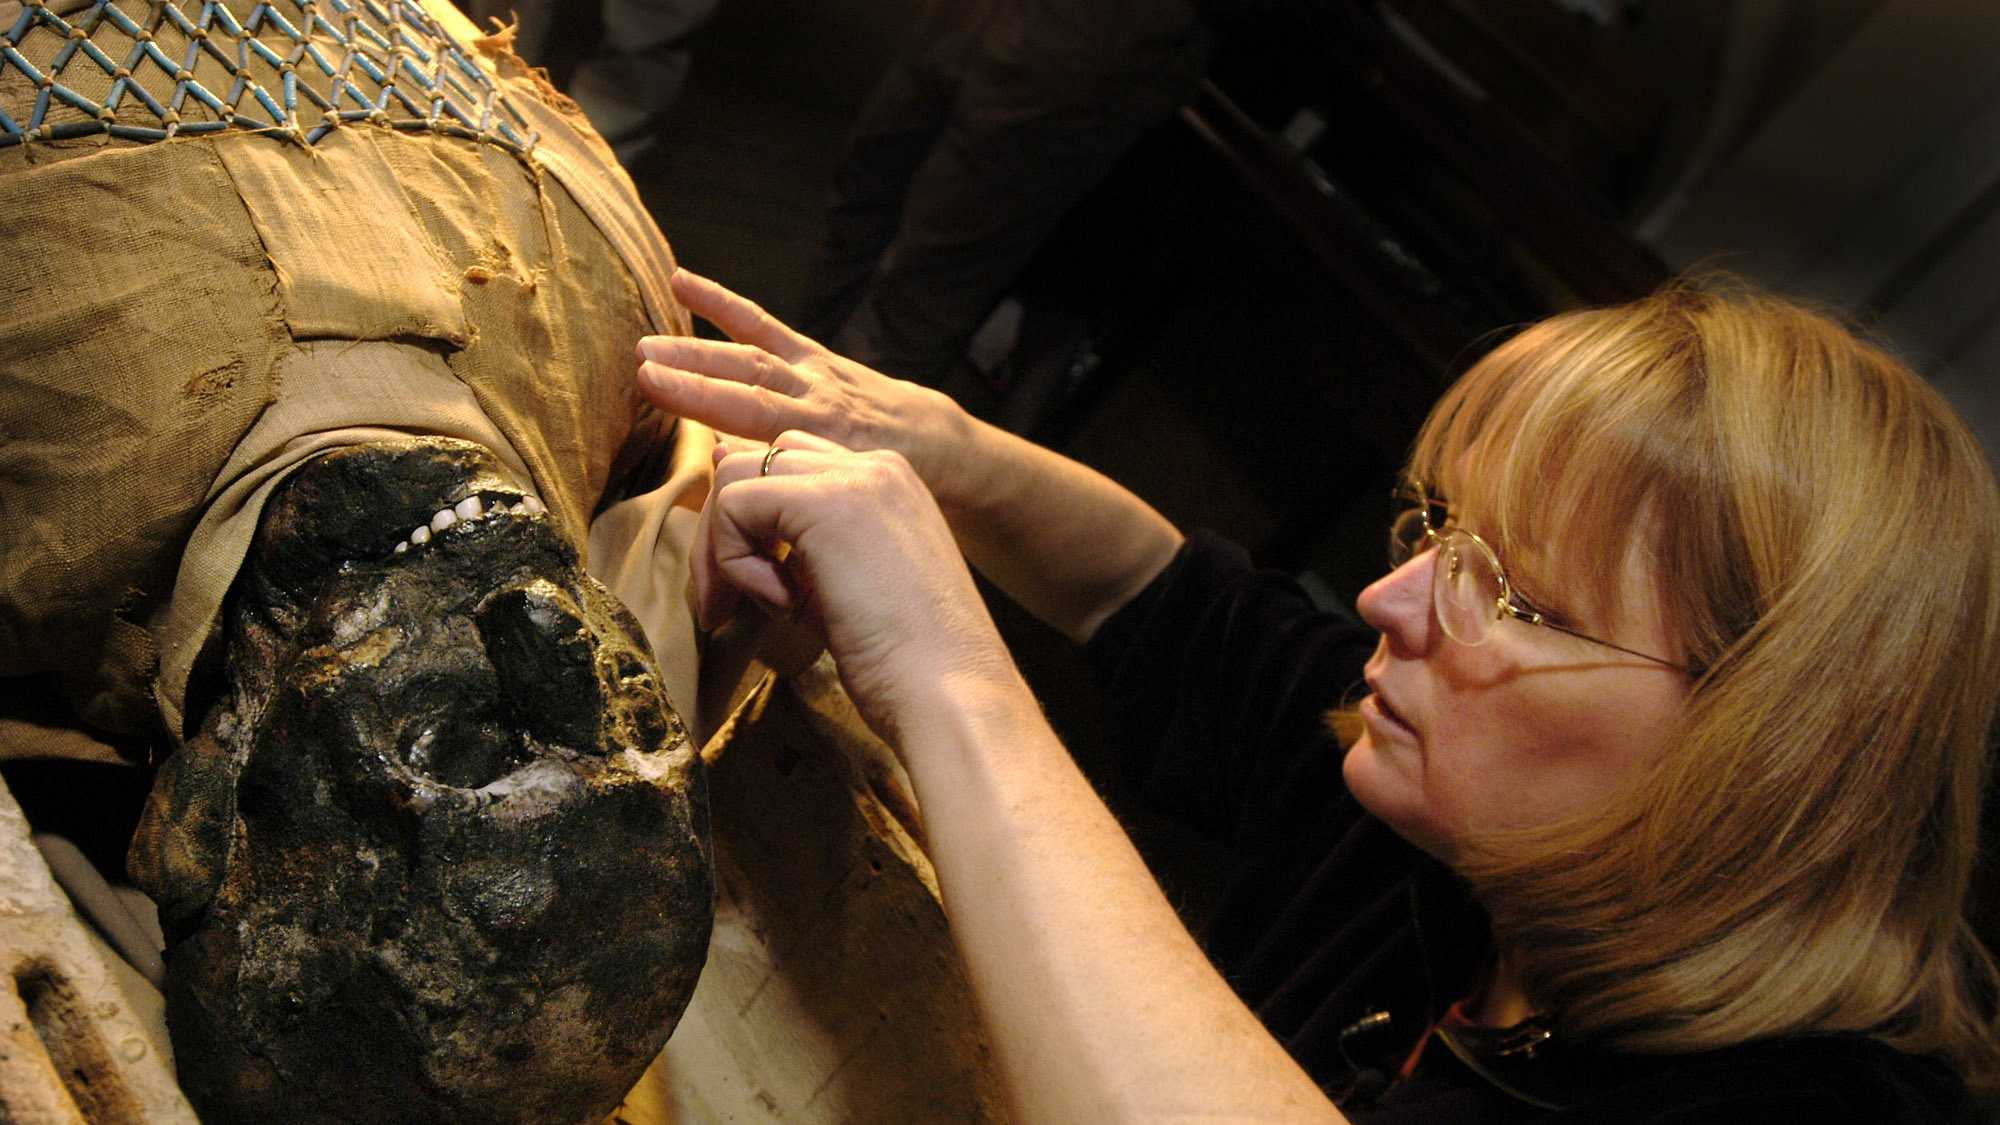 Egyptologist Mimi Leveque begins to remove the protective wrappings around a 2,500 year-old mummy at Massachusetts General Hospital in Boston.